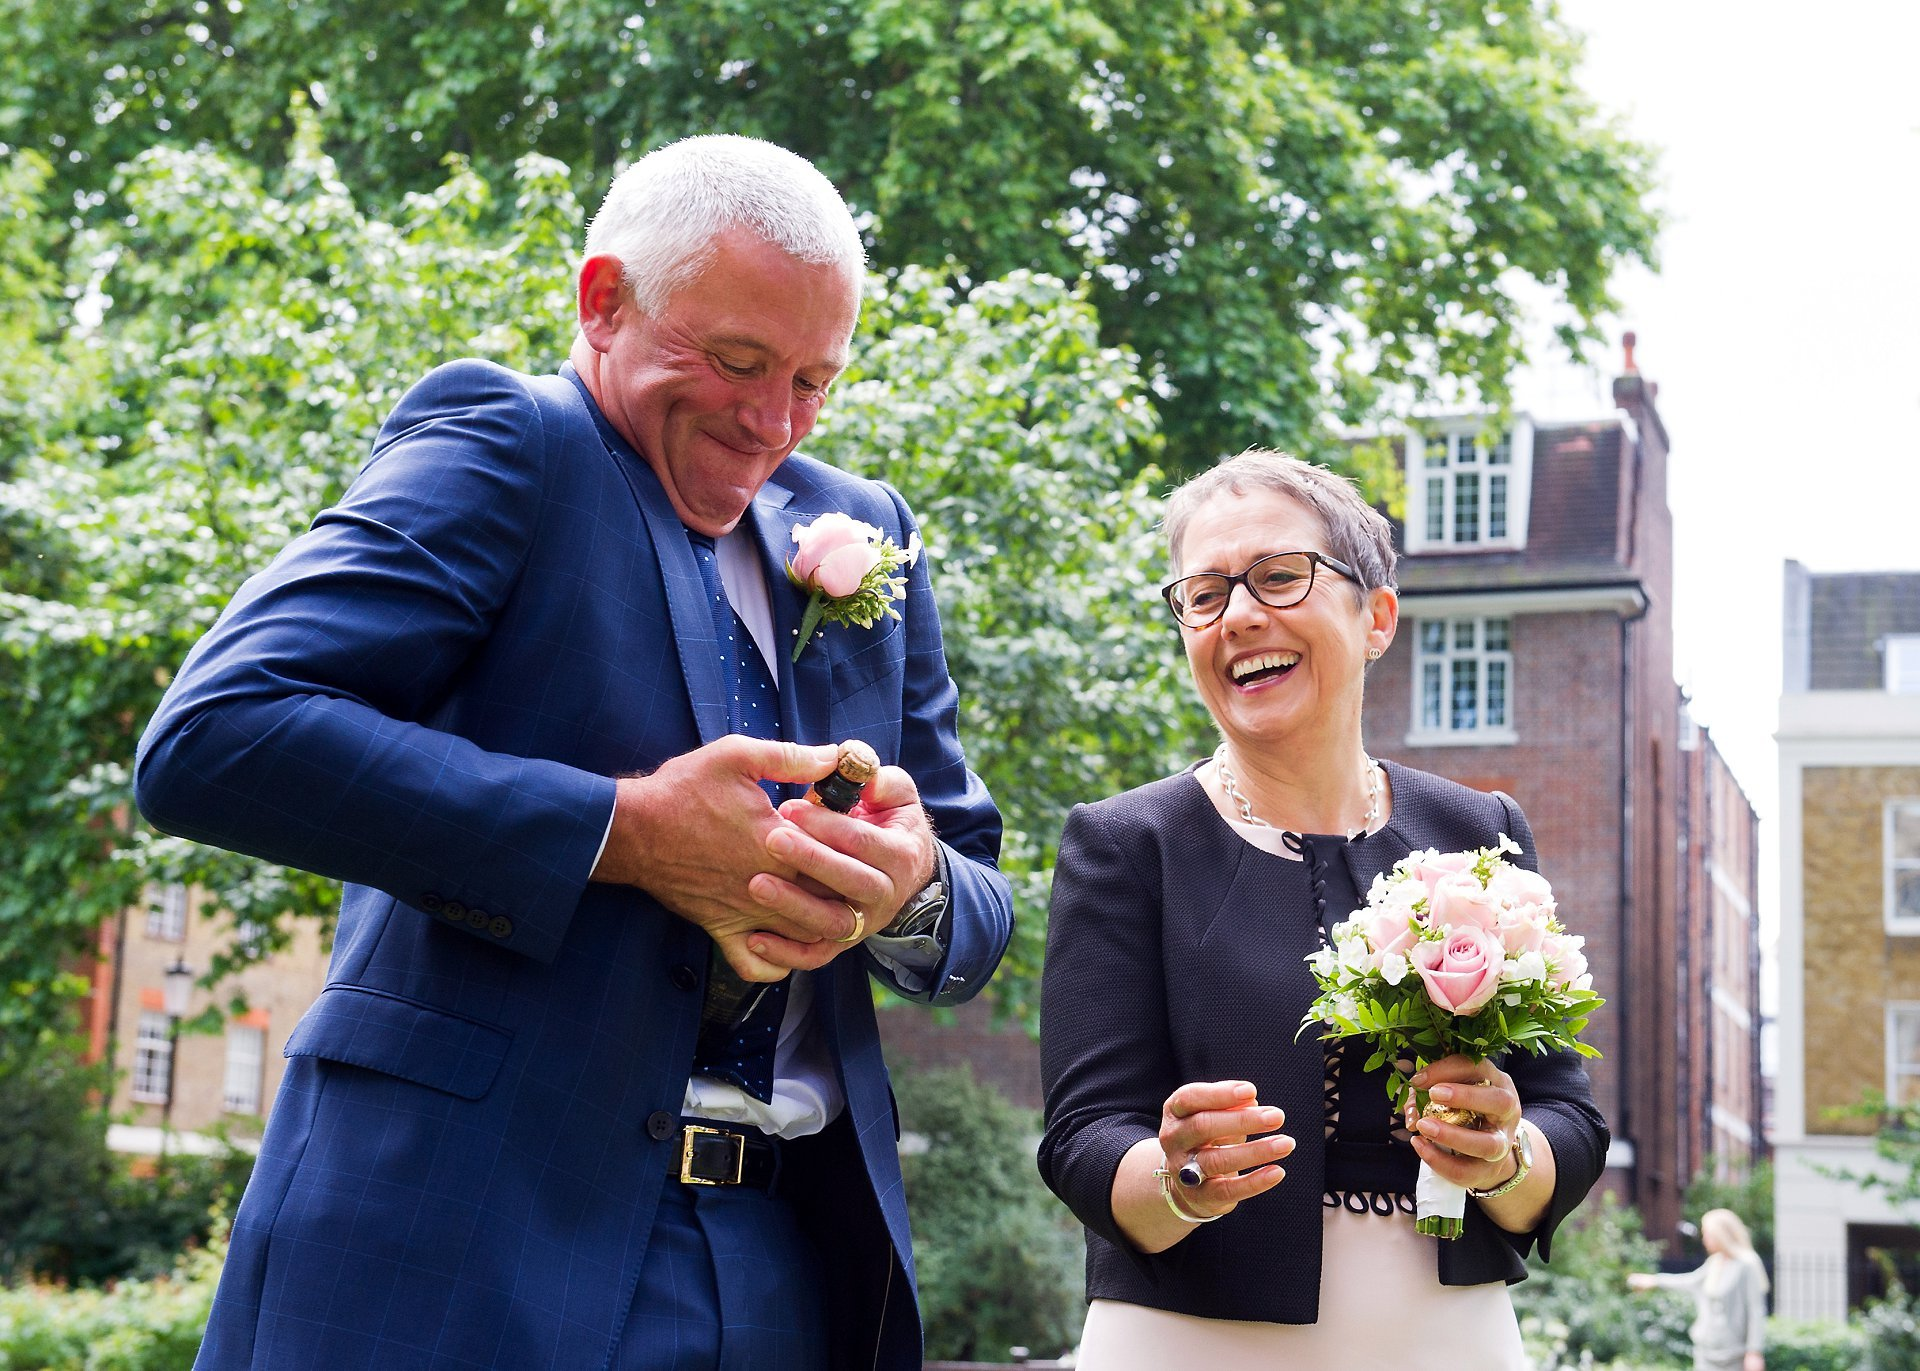 the groom struggles to open a bottle of champagne to toast their wedding in st luke's gardens near chelsea old town hall